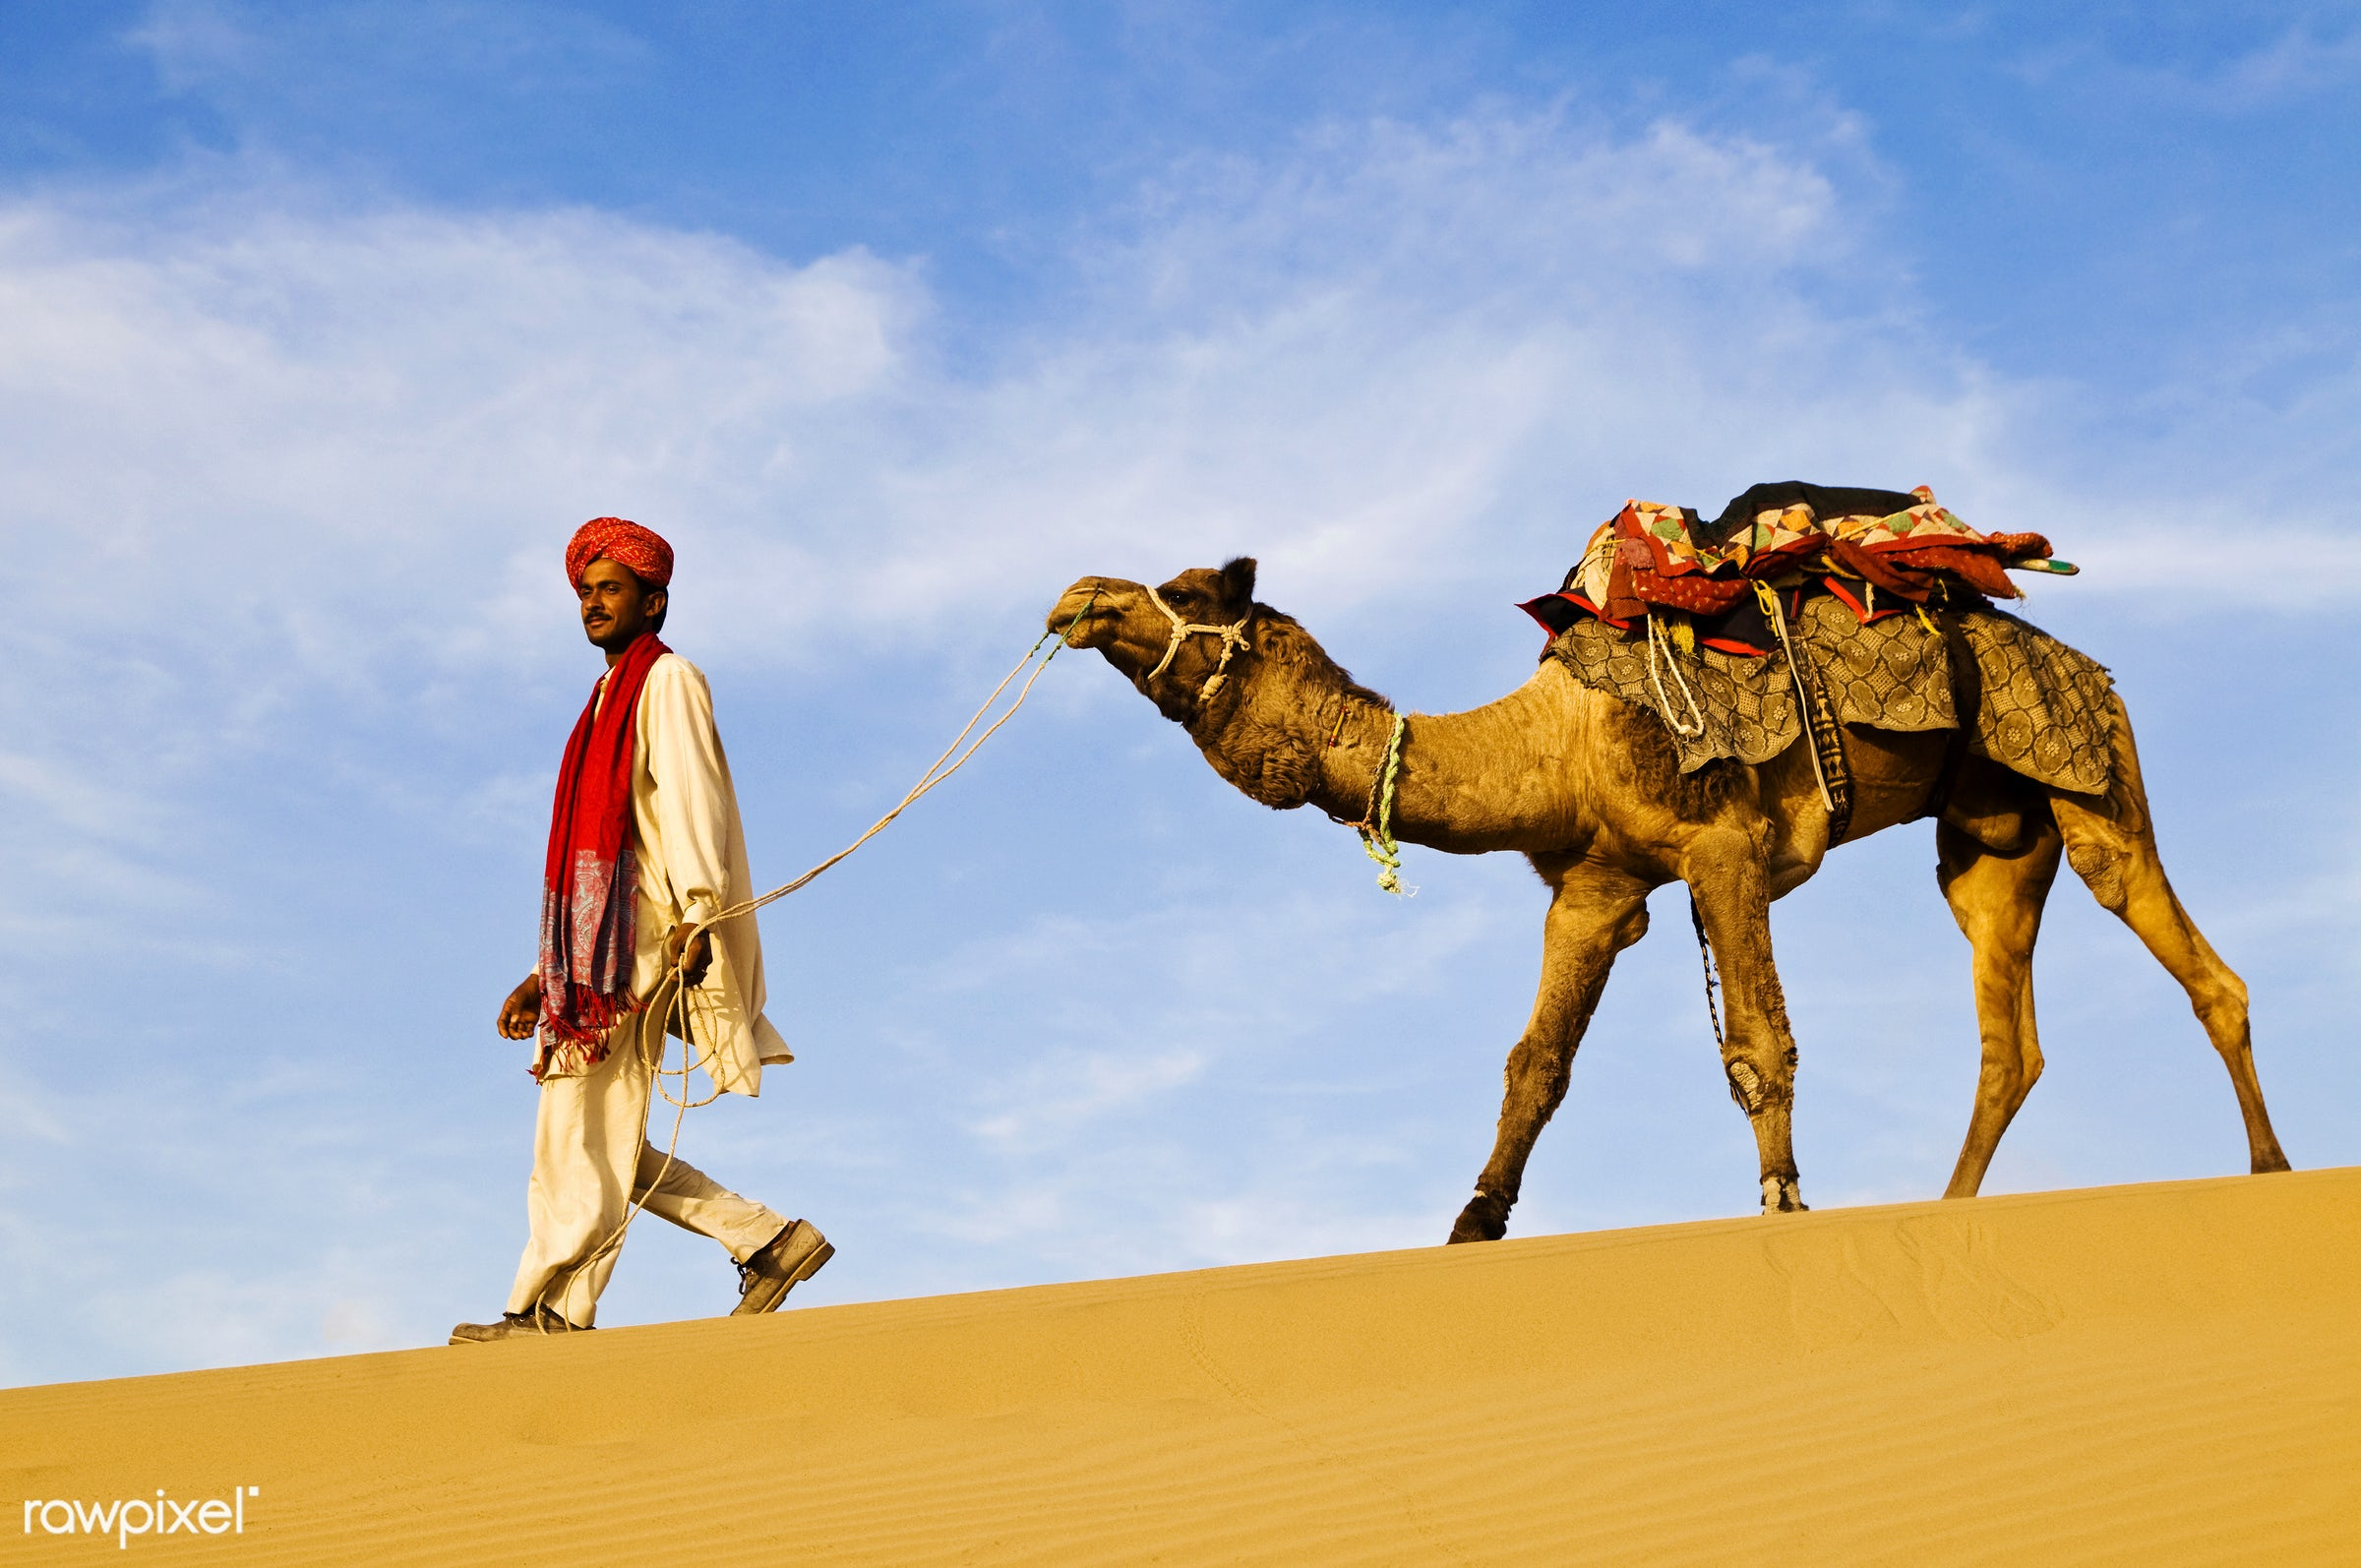 Indian man walking through the desert with his camel - rajasthan, travel, desert, animal themes, asia, beauty in nature,...